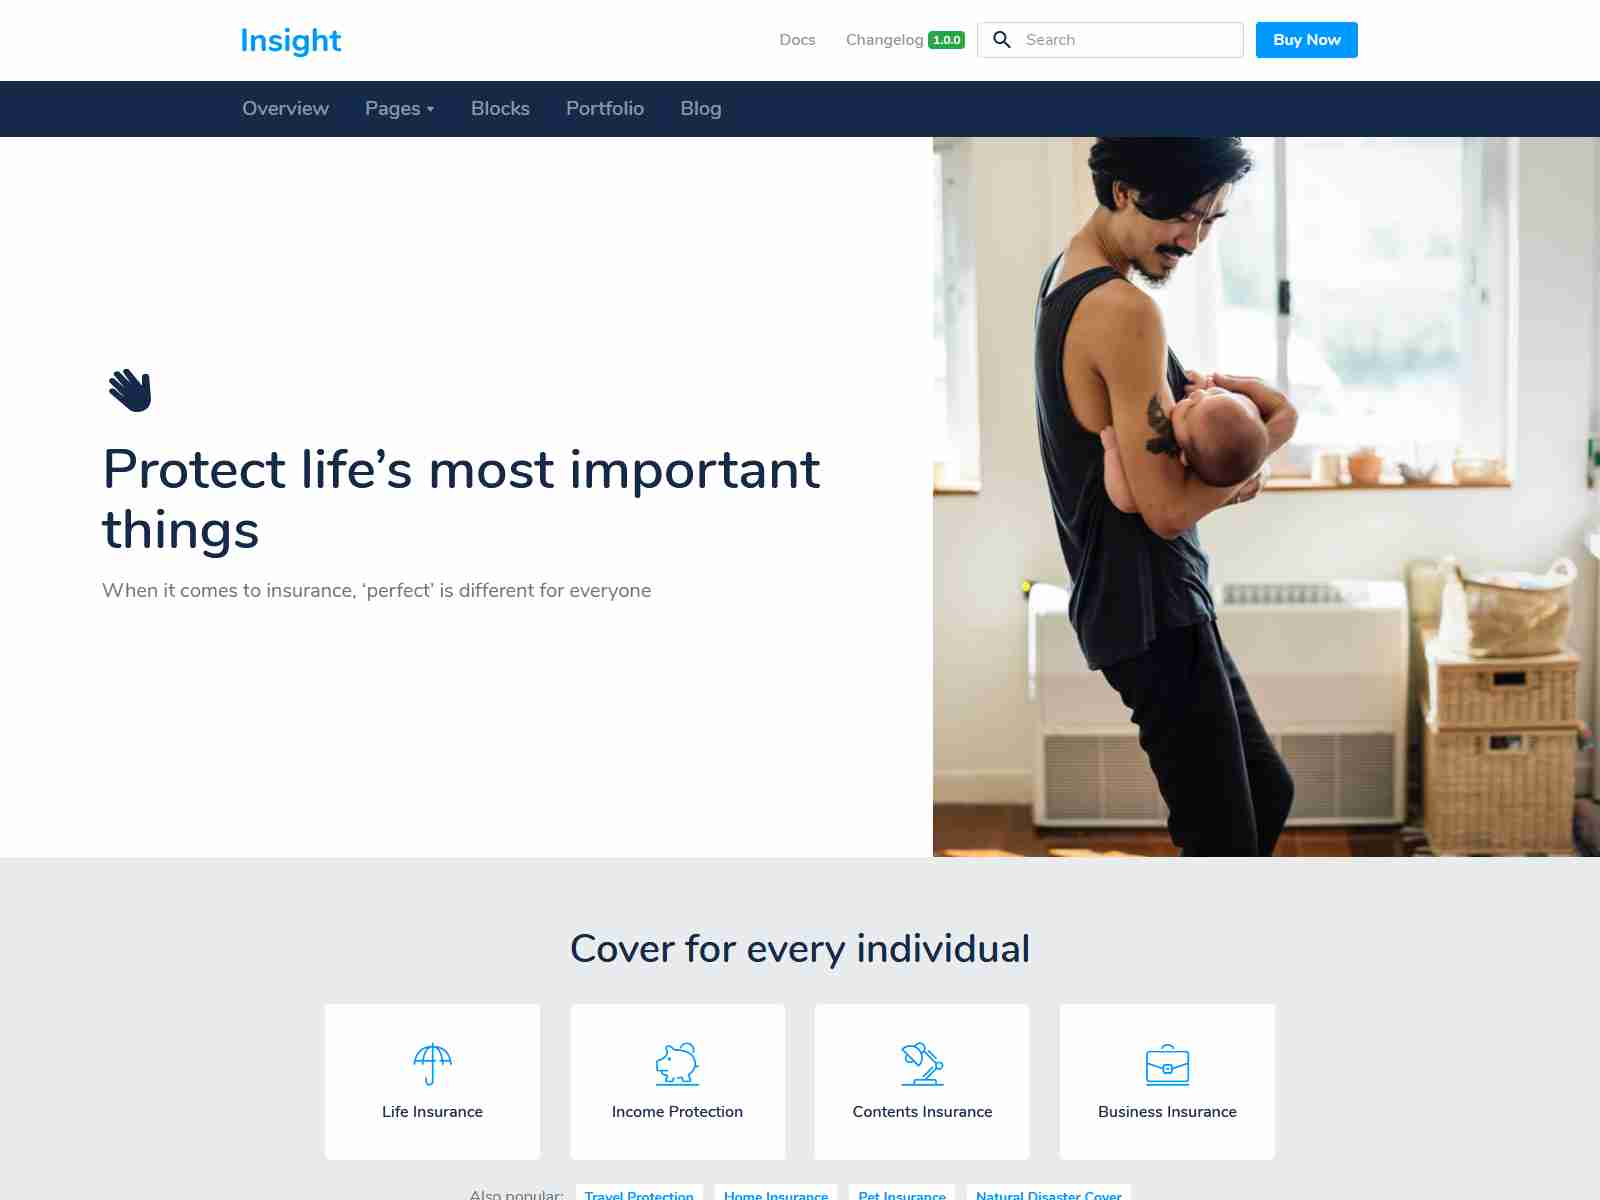 Insight - Modular Responsive WordPress Theme for Business